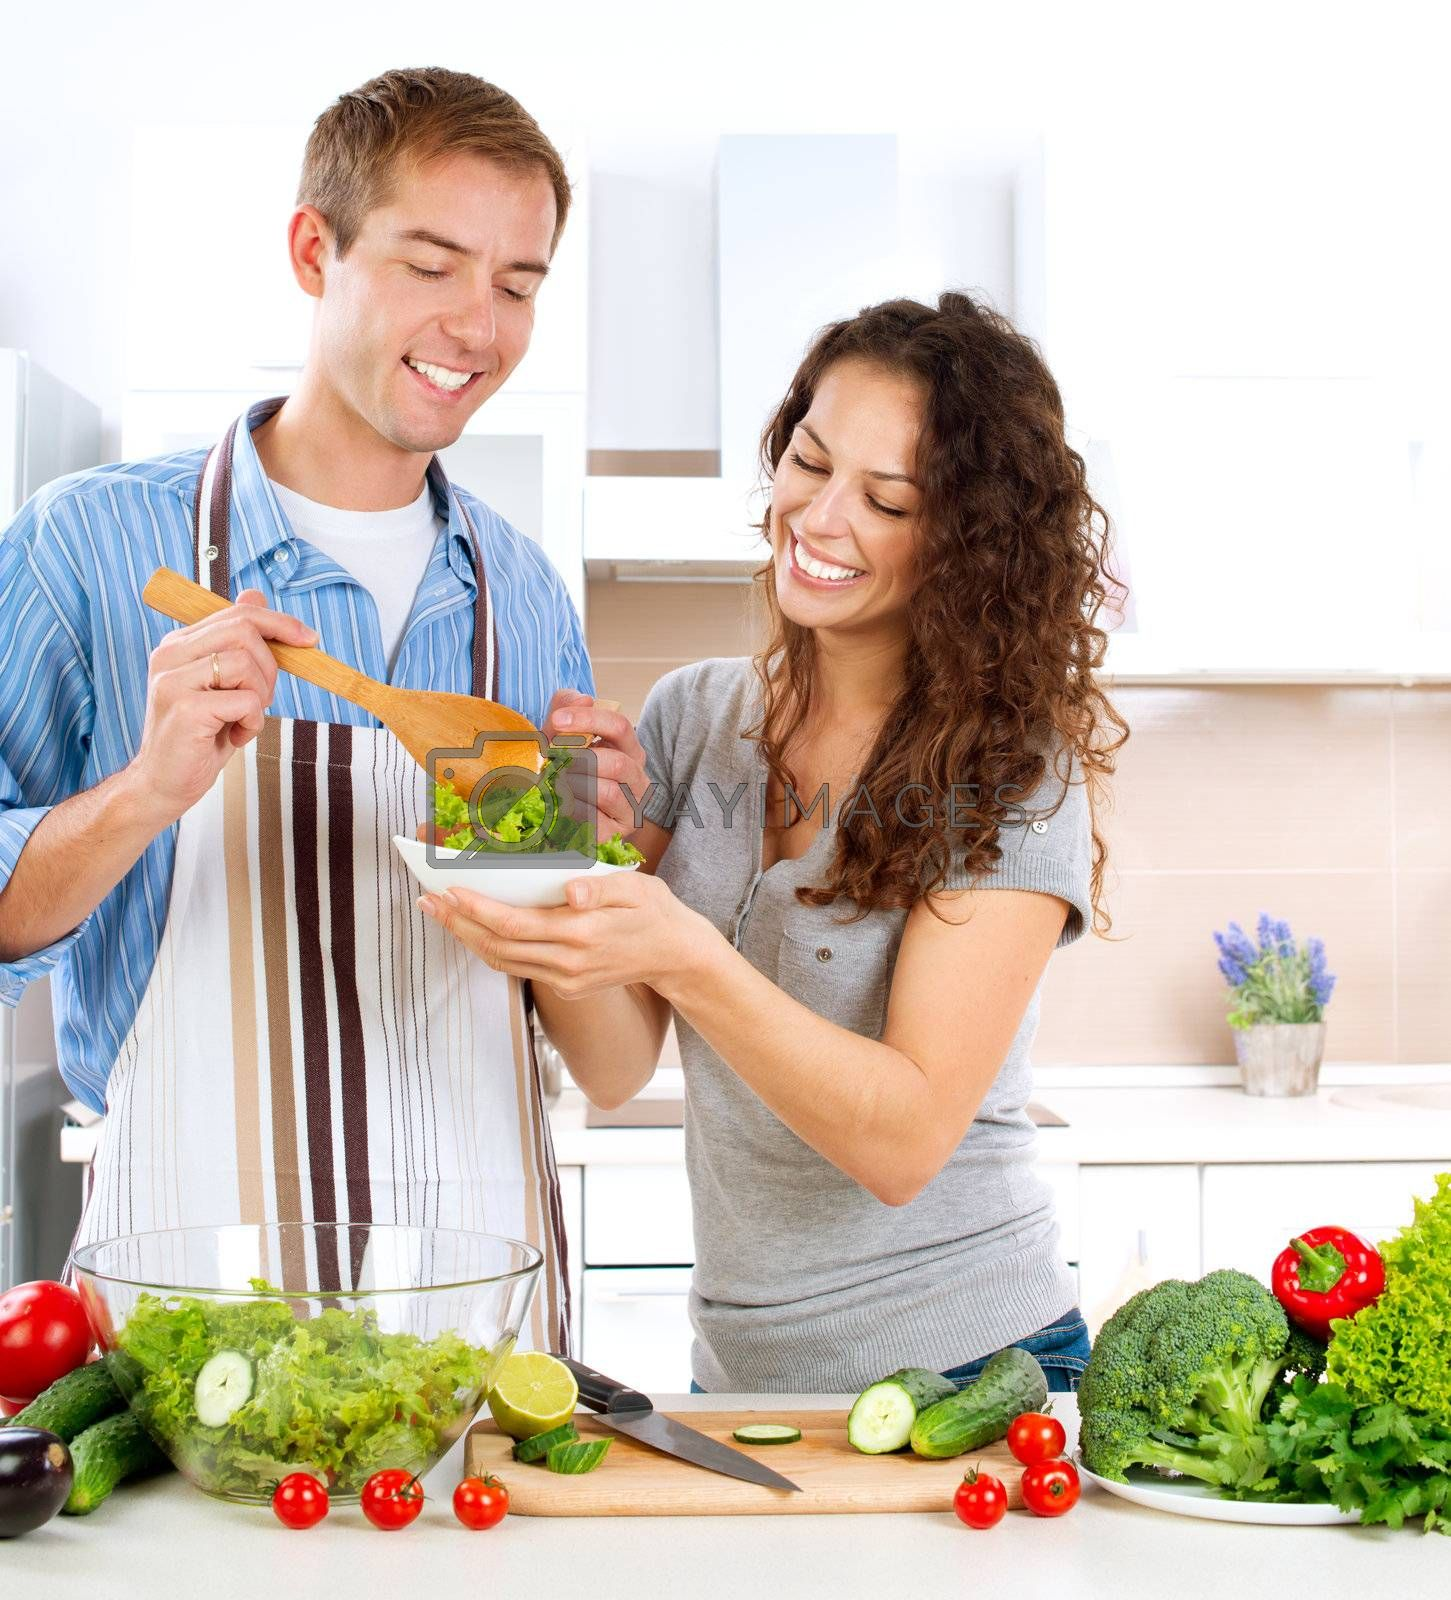 Young Man Cooking. Happy Couple Eating Fresh Vegetable Salad  by Subbotina Anna